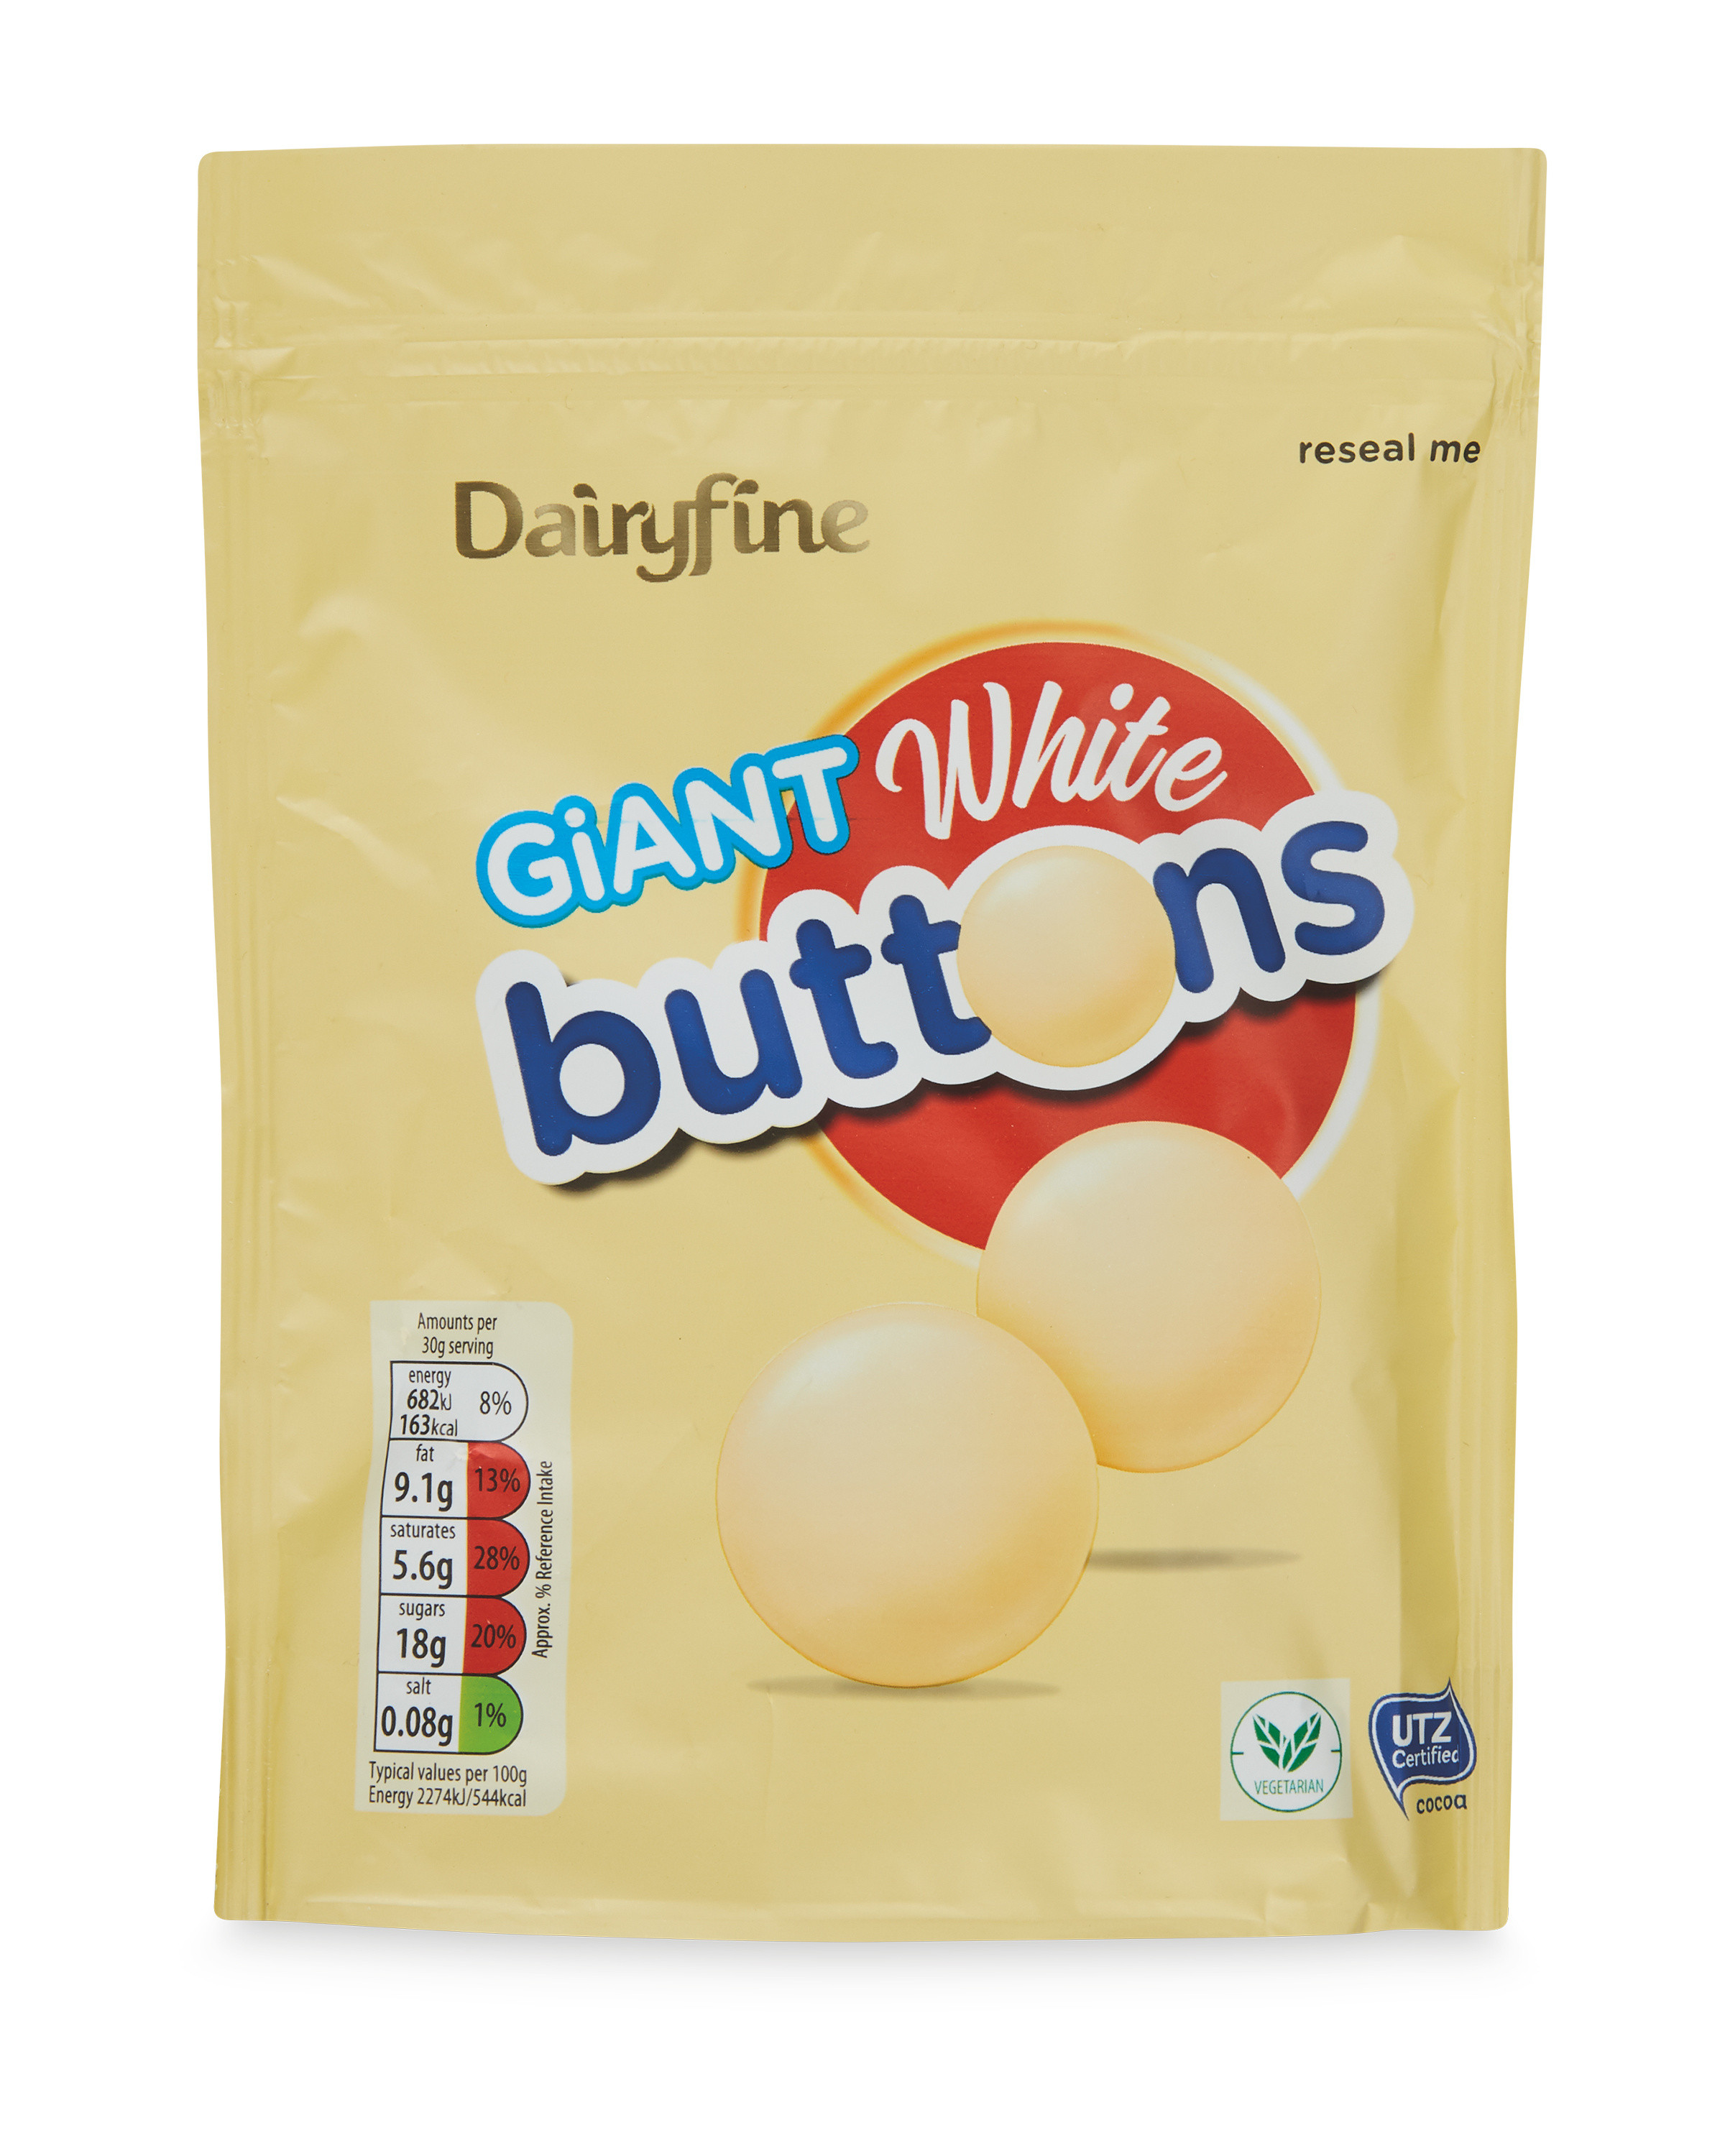 Giant White Chocolate Buttons